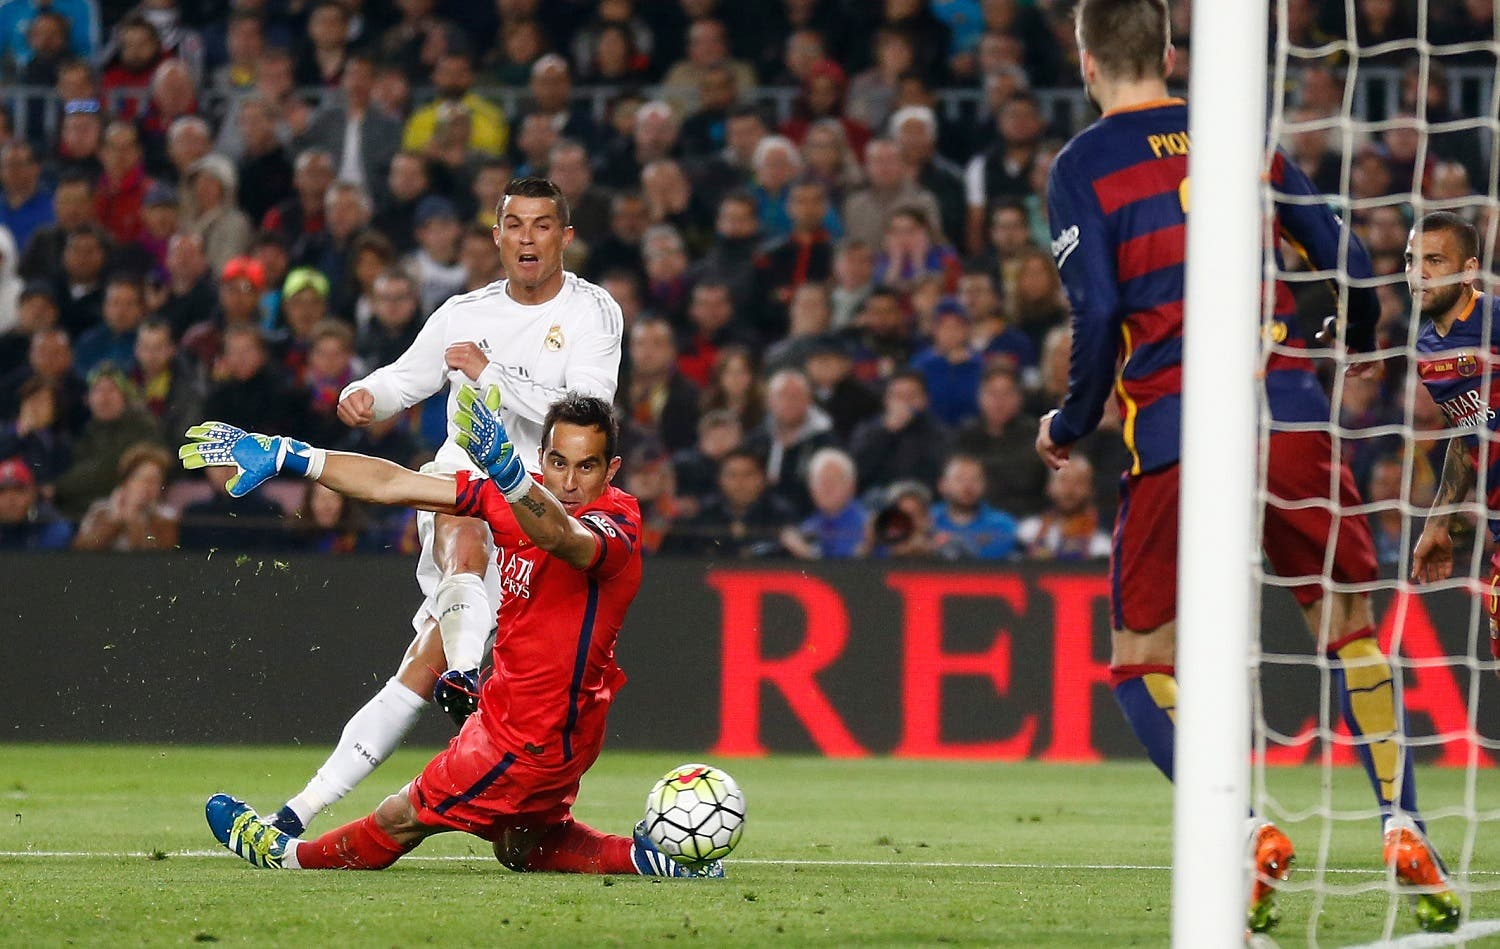 Real Madrid's Cristiano Ronaldo, left, scores his side's second goal past Barcelona goalkeeper Claudio Bravo during a Spanish La Liga soccer match between Barcelona and Real Madrid, dubbed 'el clasico', at the Camp Nou stadium in Barcelona, Spain, Saturday, April 2, 2016. (AP)